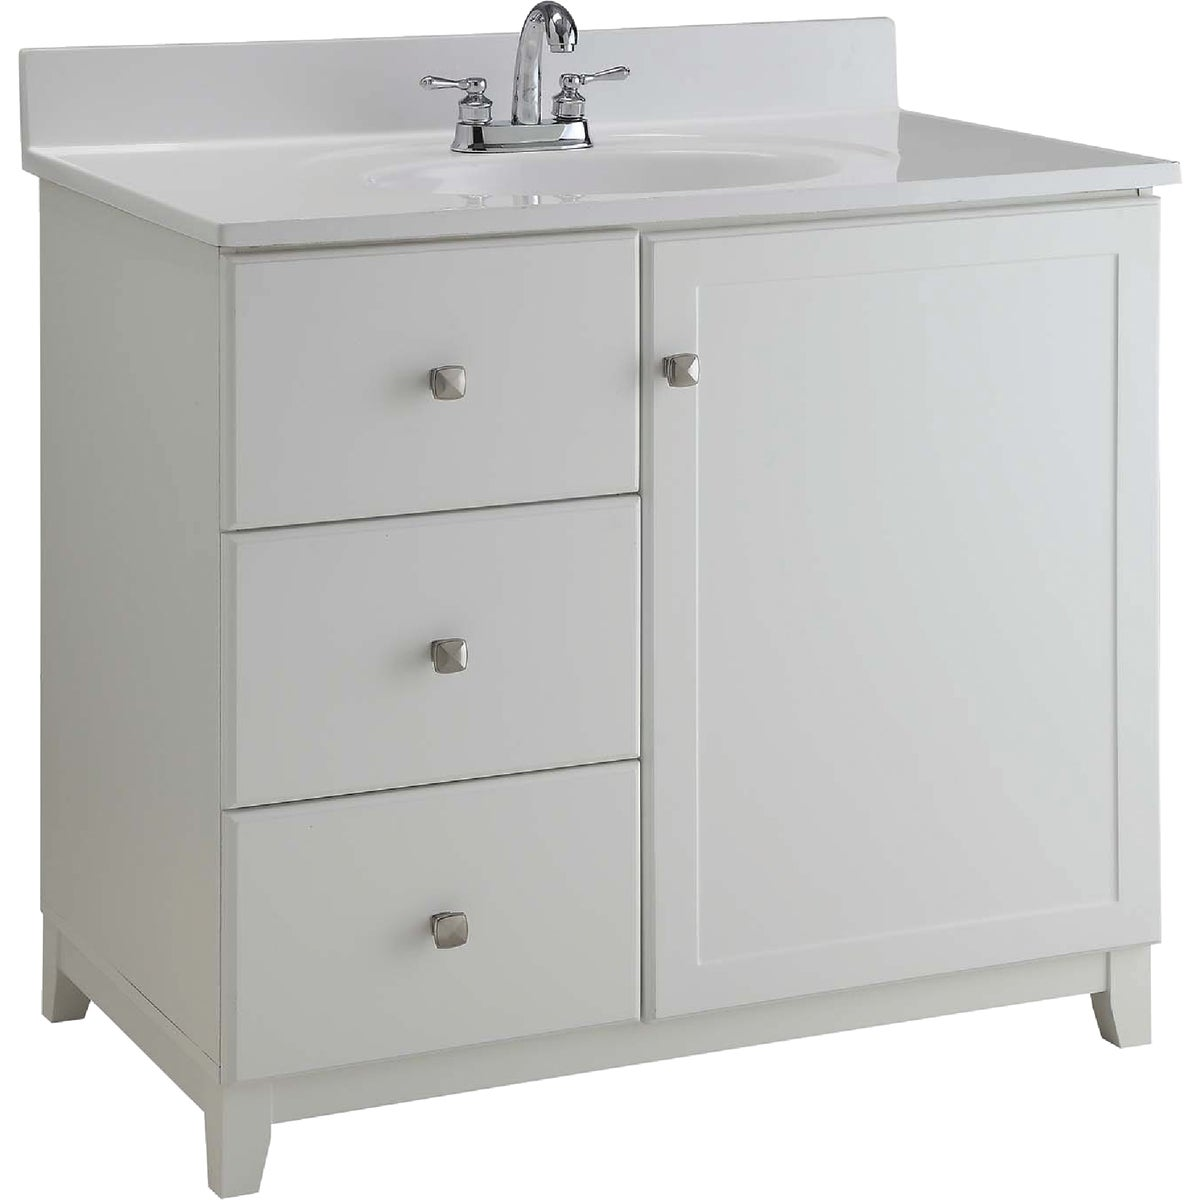 30X21 WHITE VANITY - 545079 by Design House  Dhi